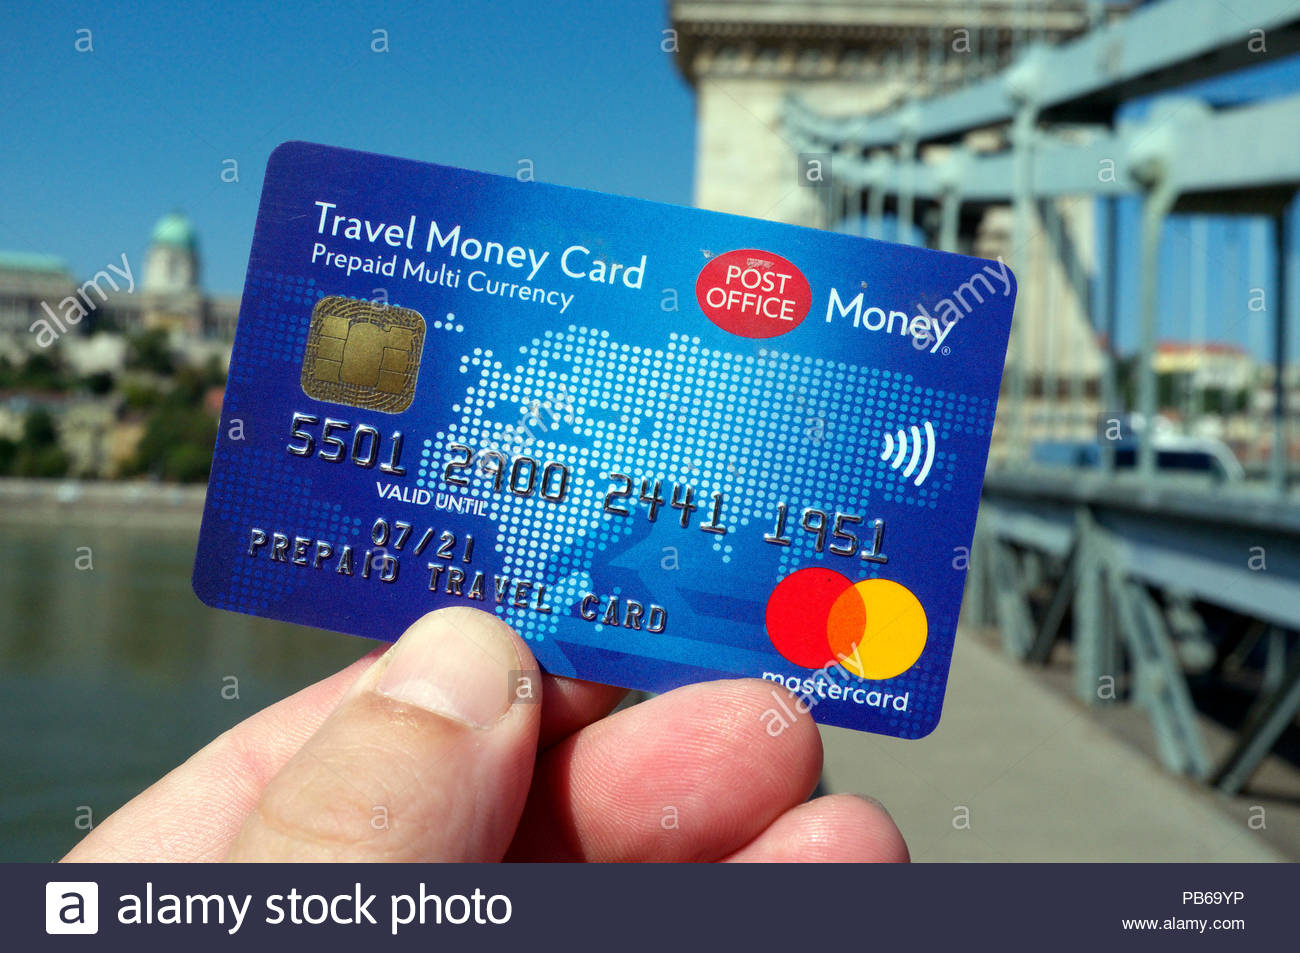 A prepaid multi currency Travel Money Card, issued by the Post Office (UK)